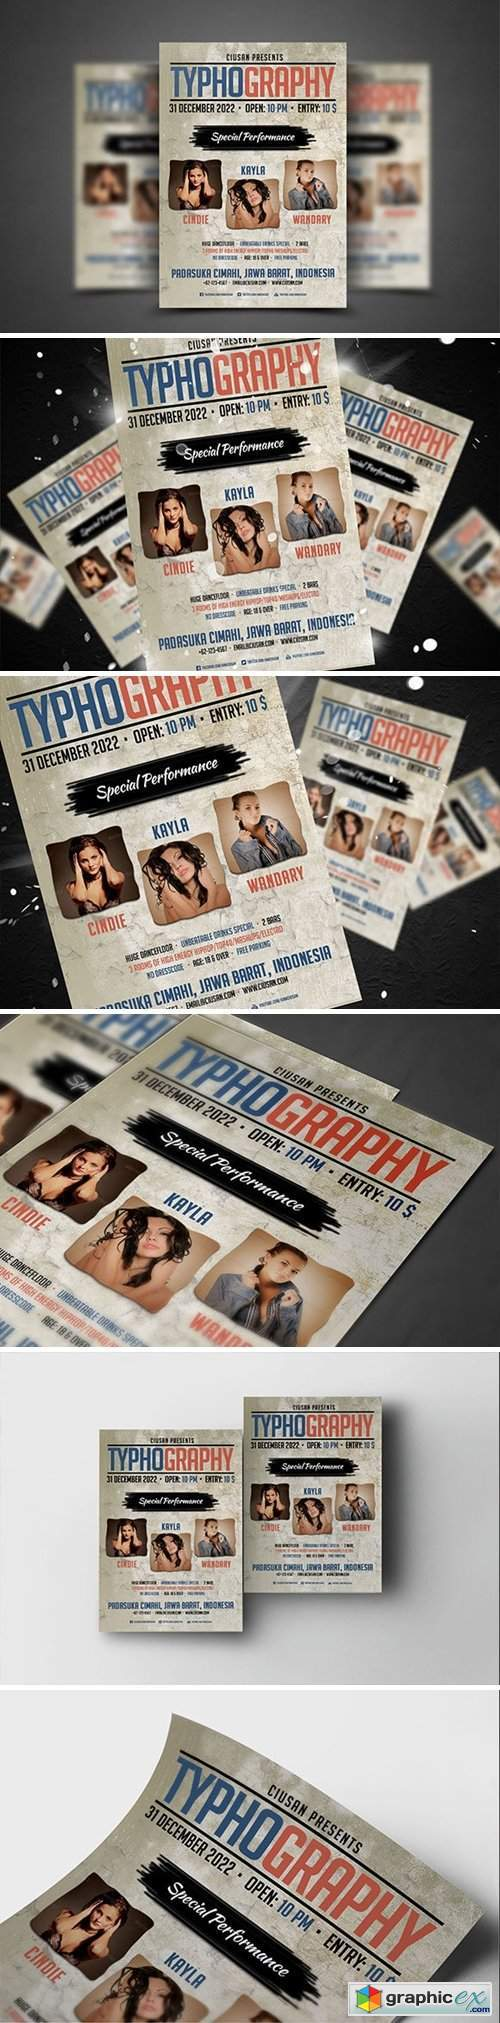 Typhography Flyer Template